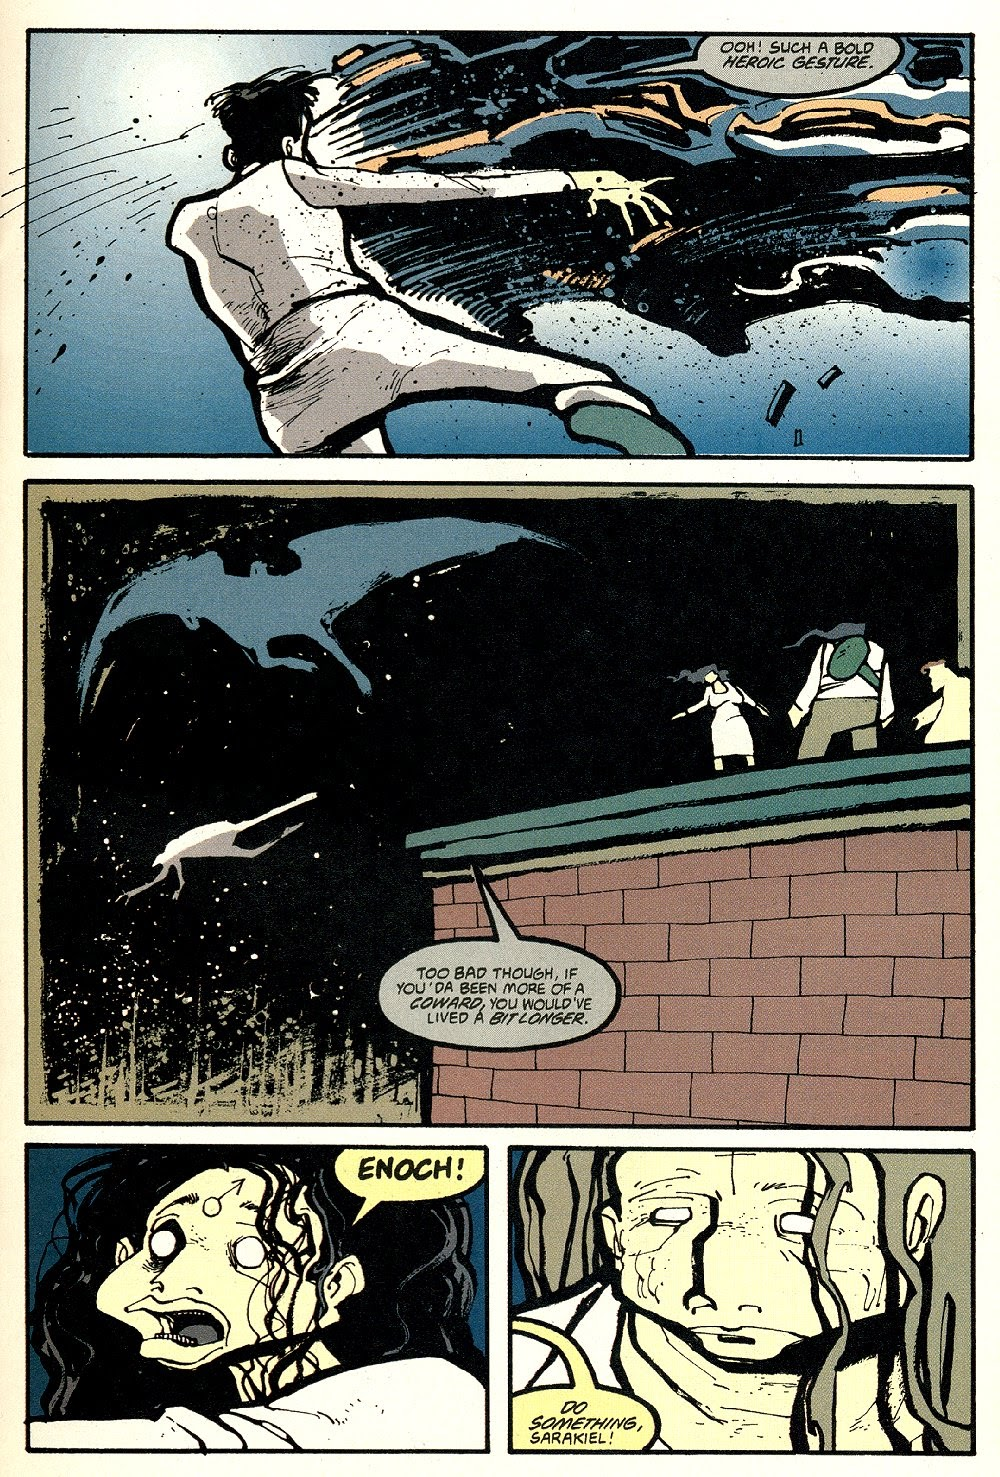 Read online Ted McKeever's Metropol comic -  Issue #8 - 11